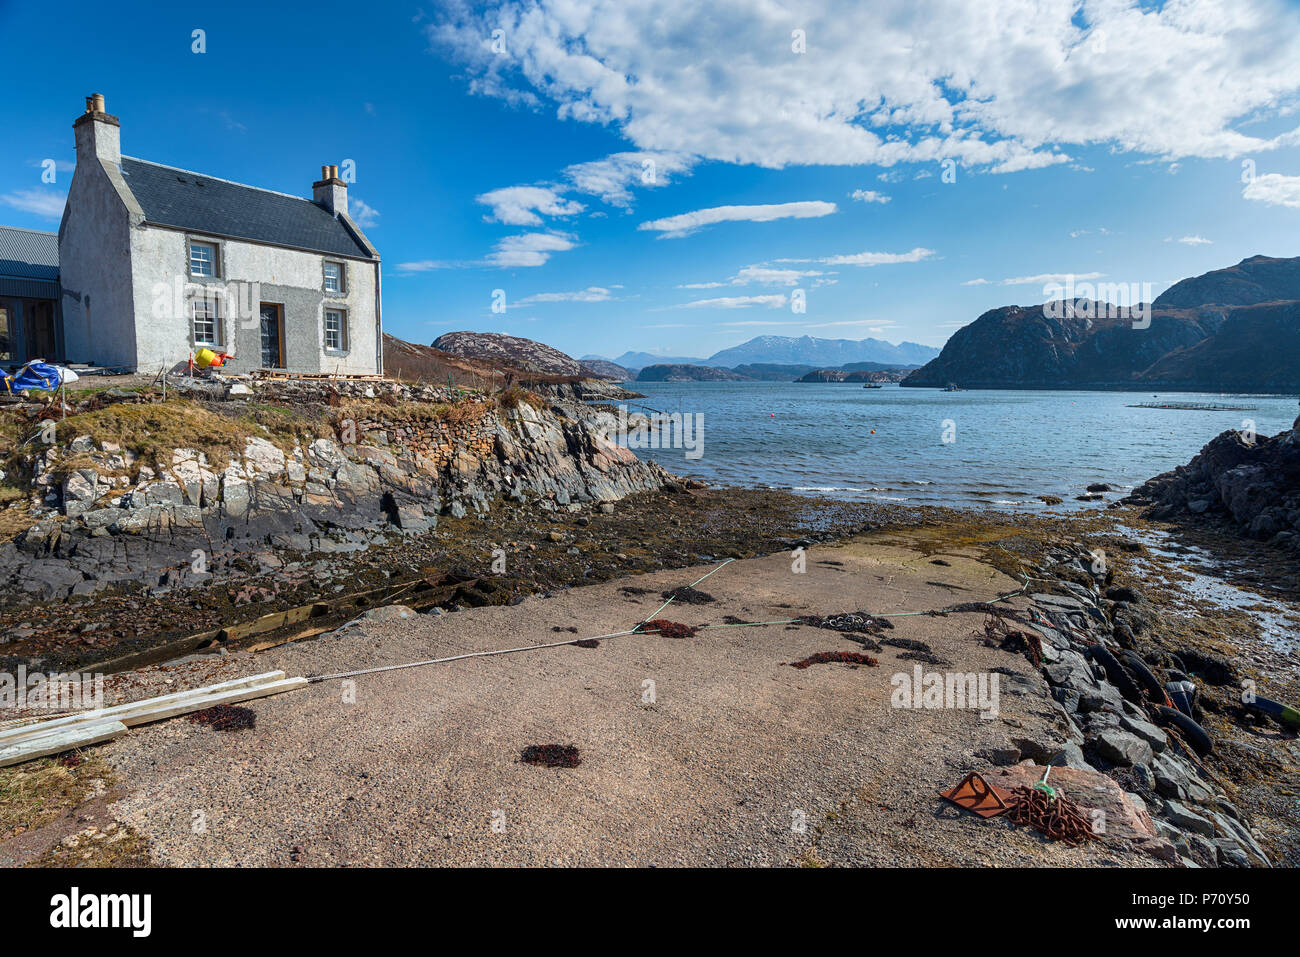 The remote hamlet of Fanagmore on the shores of Loch Laxford in Sutherland in the Scottish Highlands in far northwestern Scotland. - Stock Image